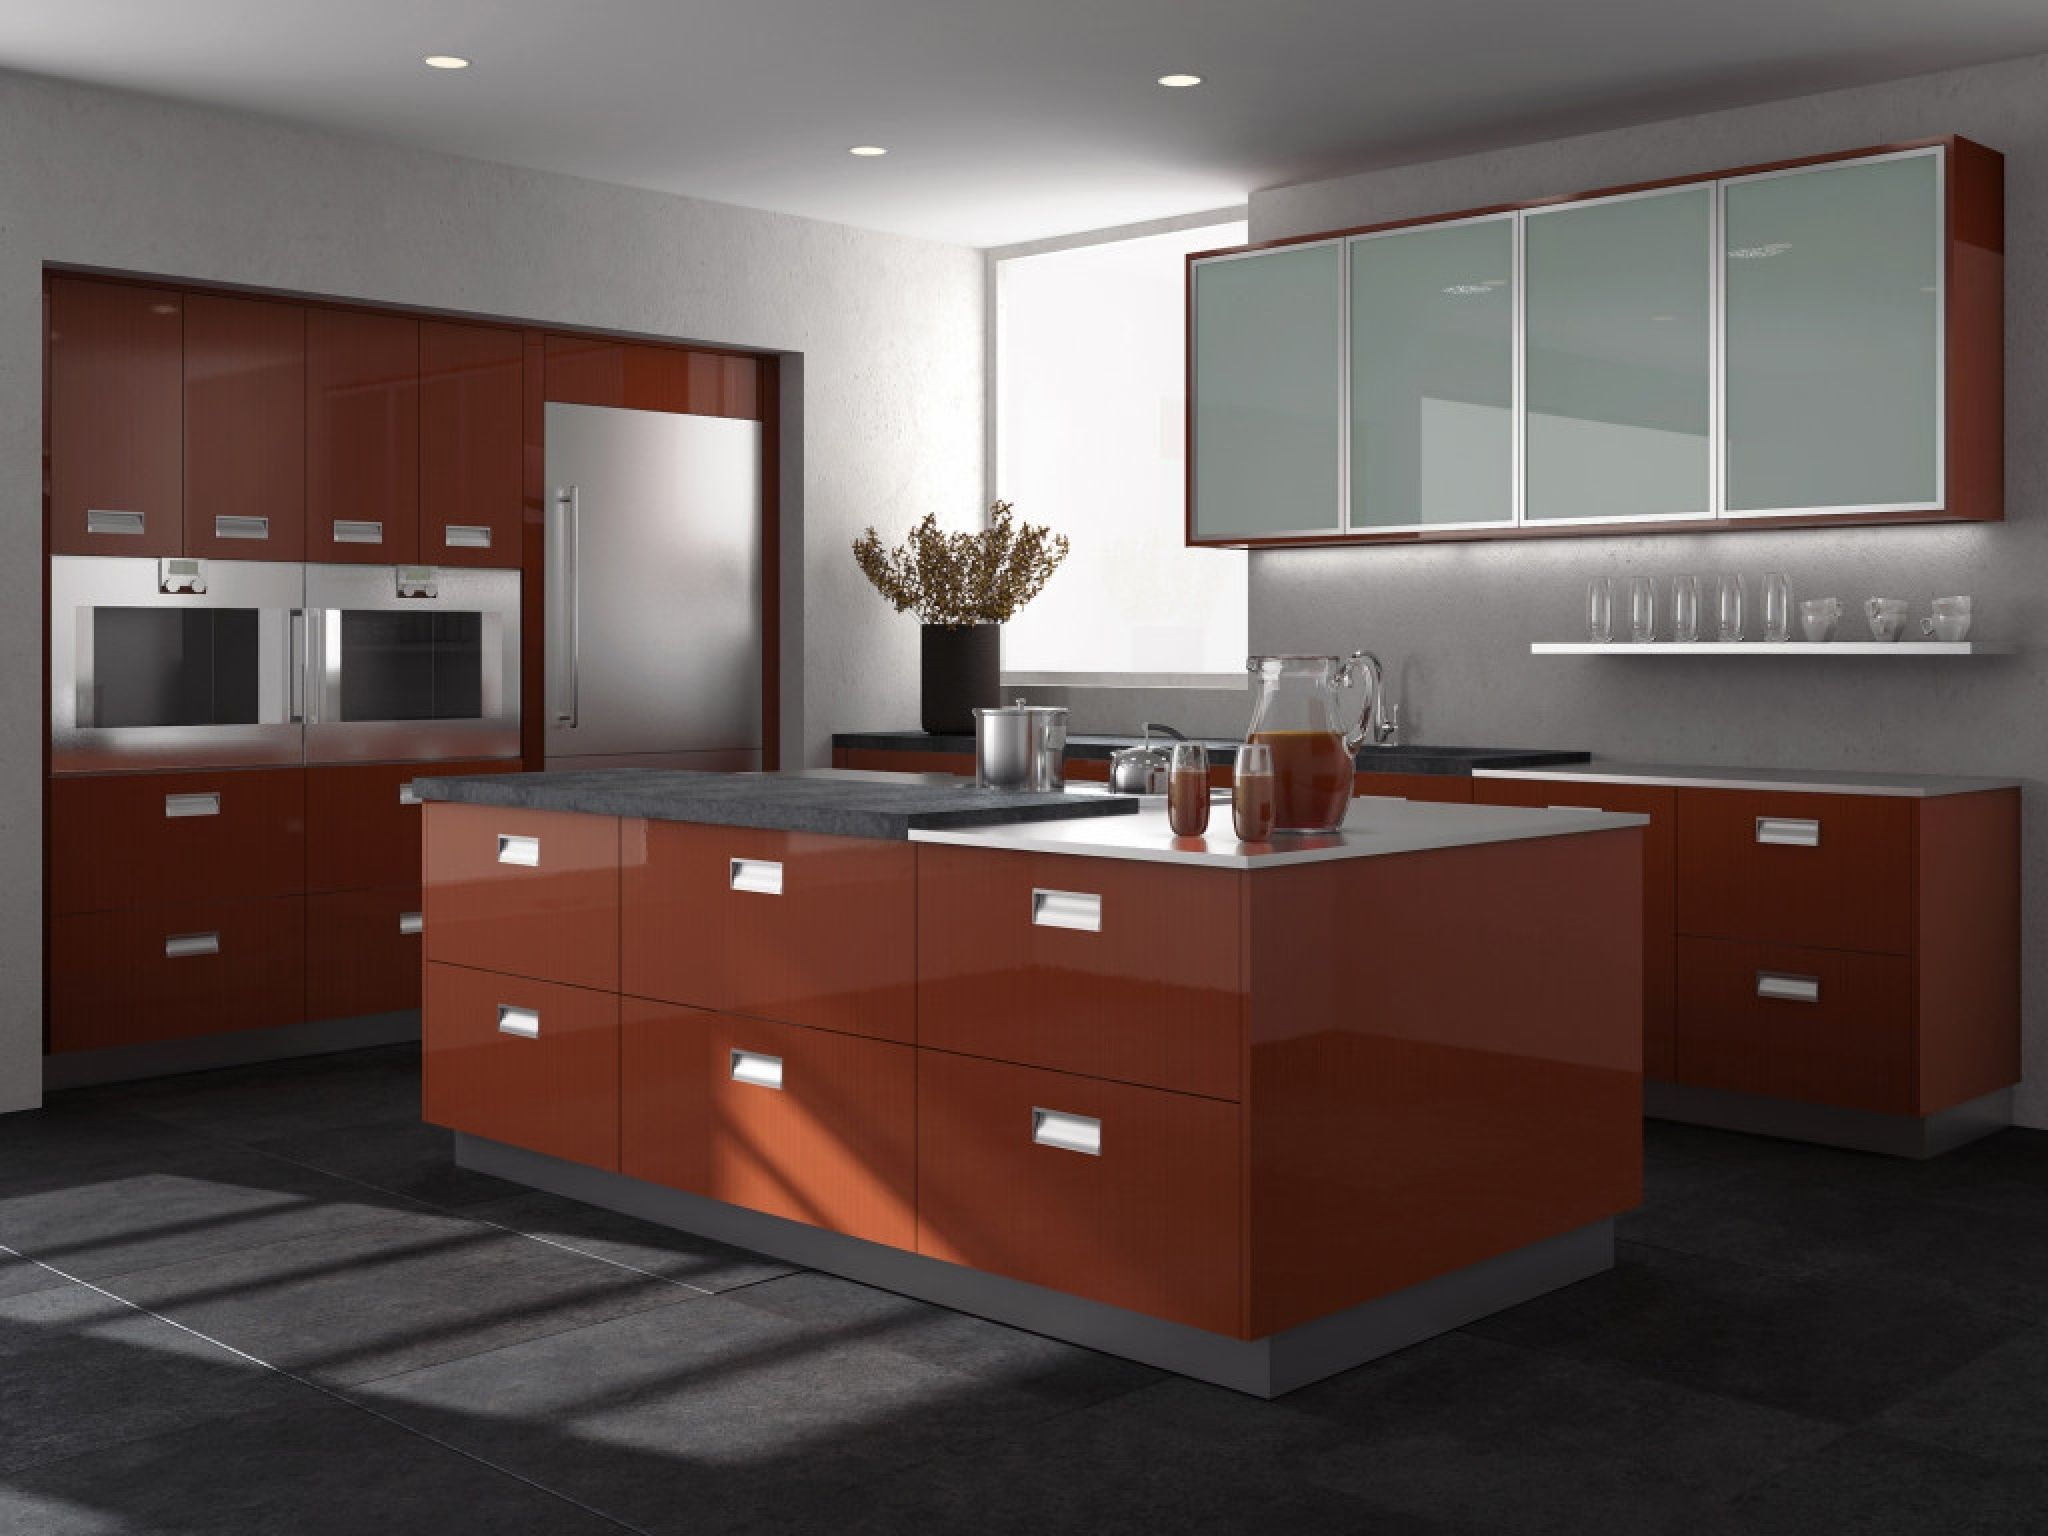 european style modern high gloss kitchen cabinets - ideas for kitchen  layouts Check more at http